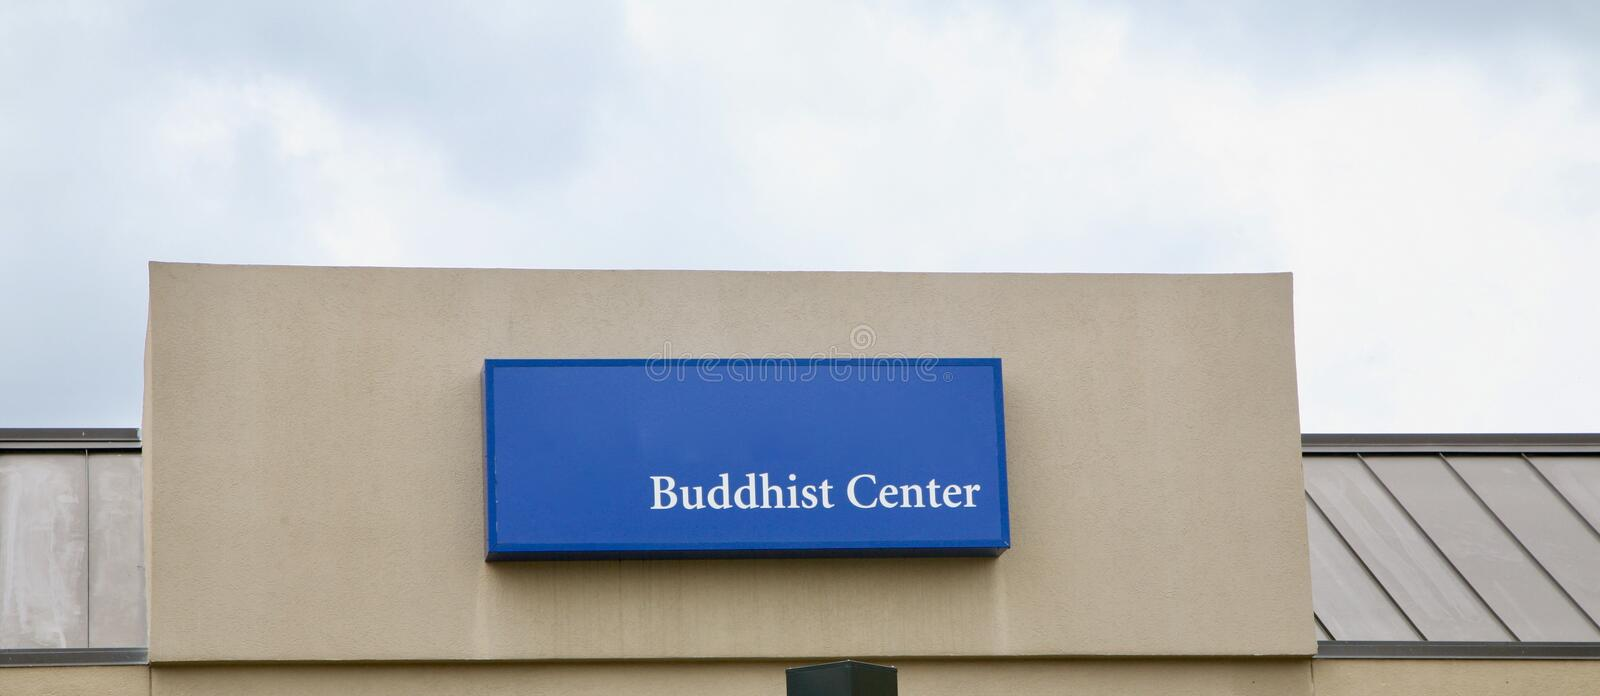 Buddhist Center. Buddhism is a religion and dharma that encompasses a variety of traditions, beliefs and spiritual practices largely based on teachings royalty free stock image